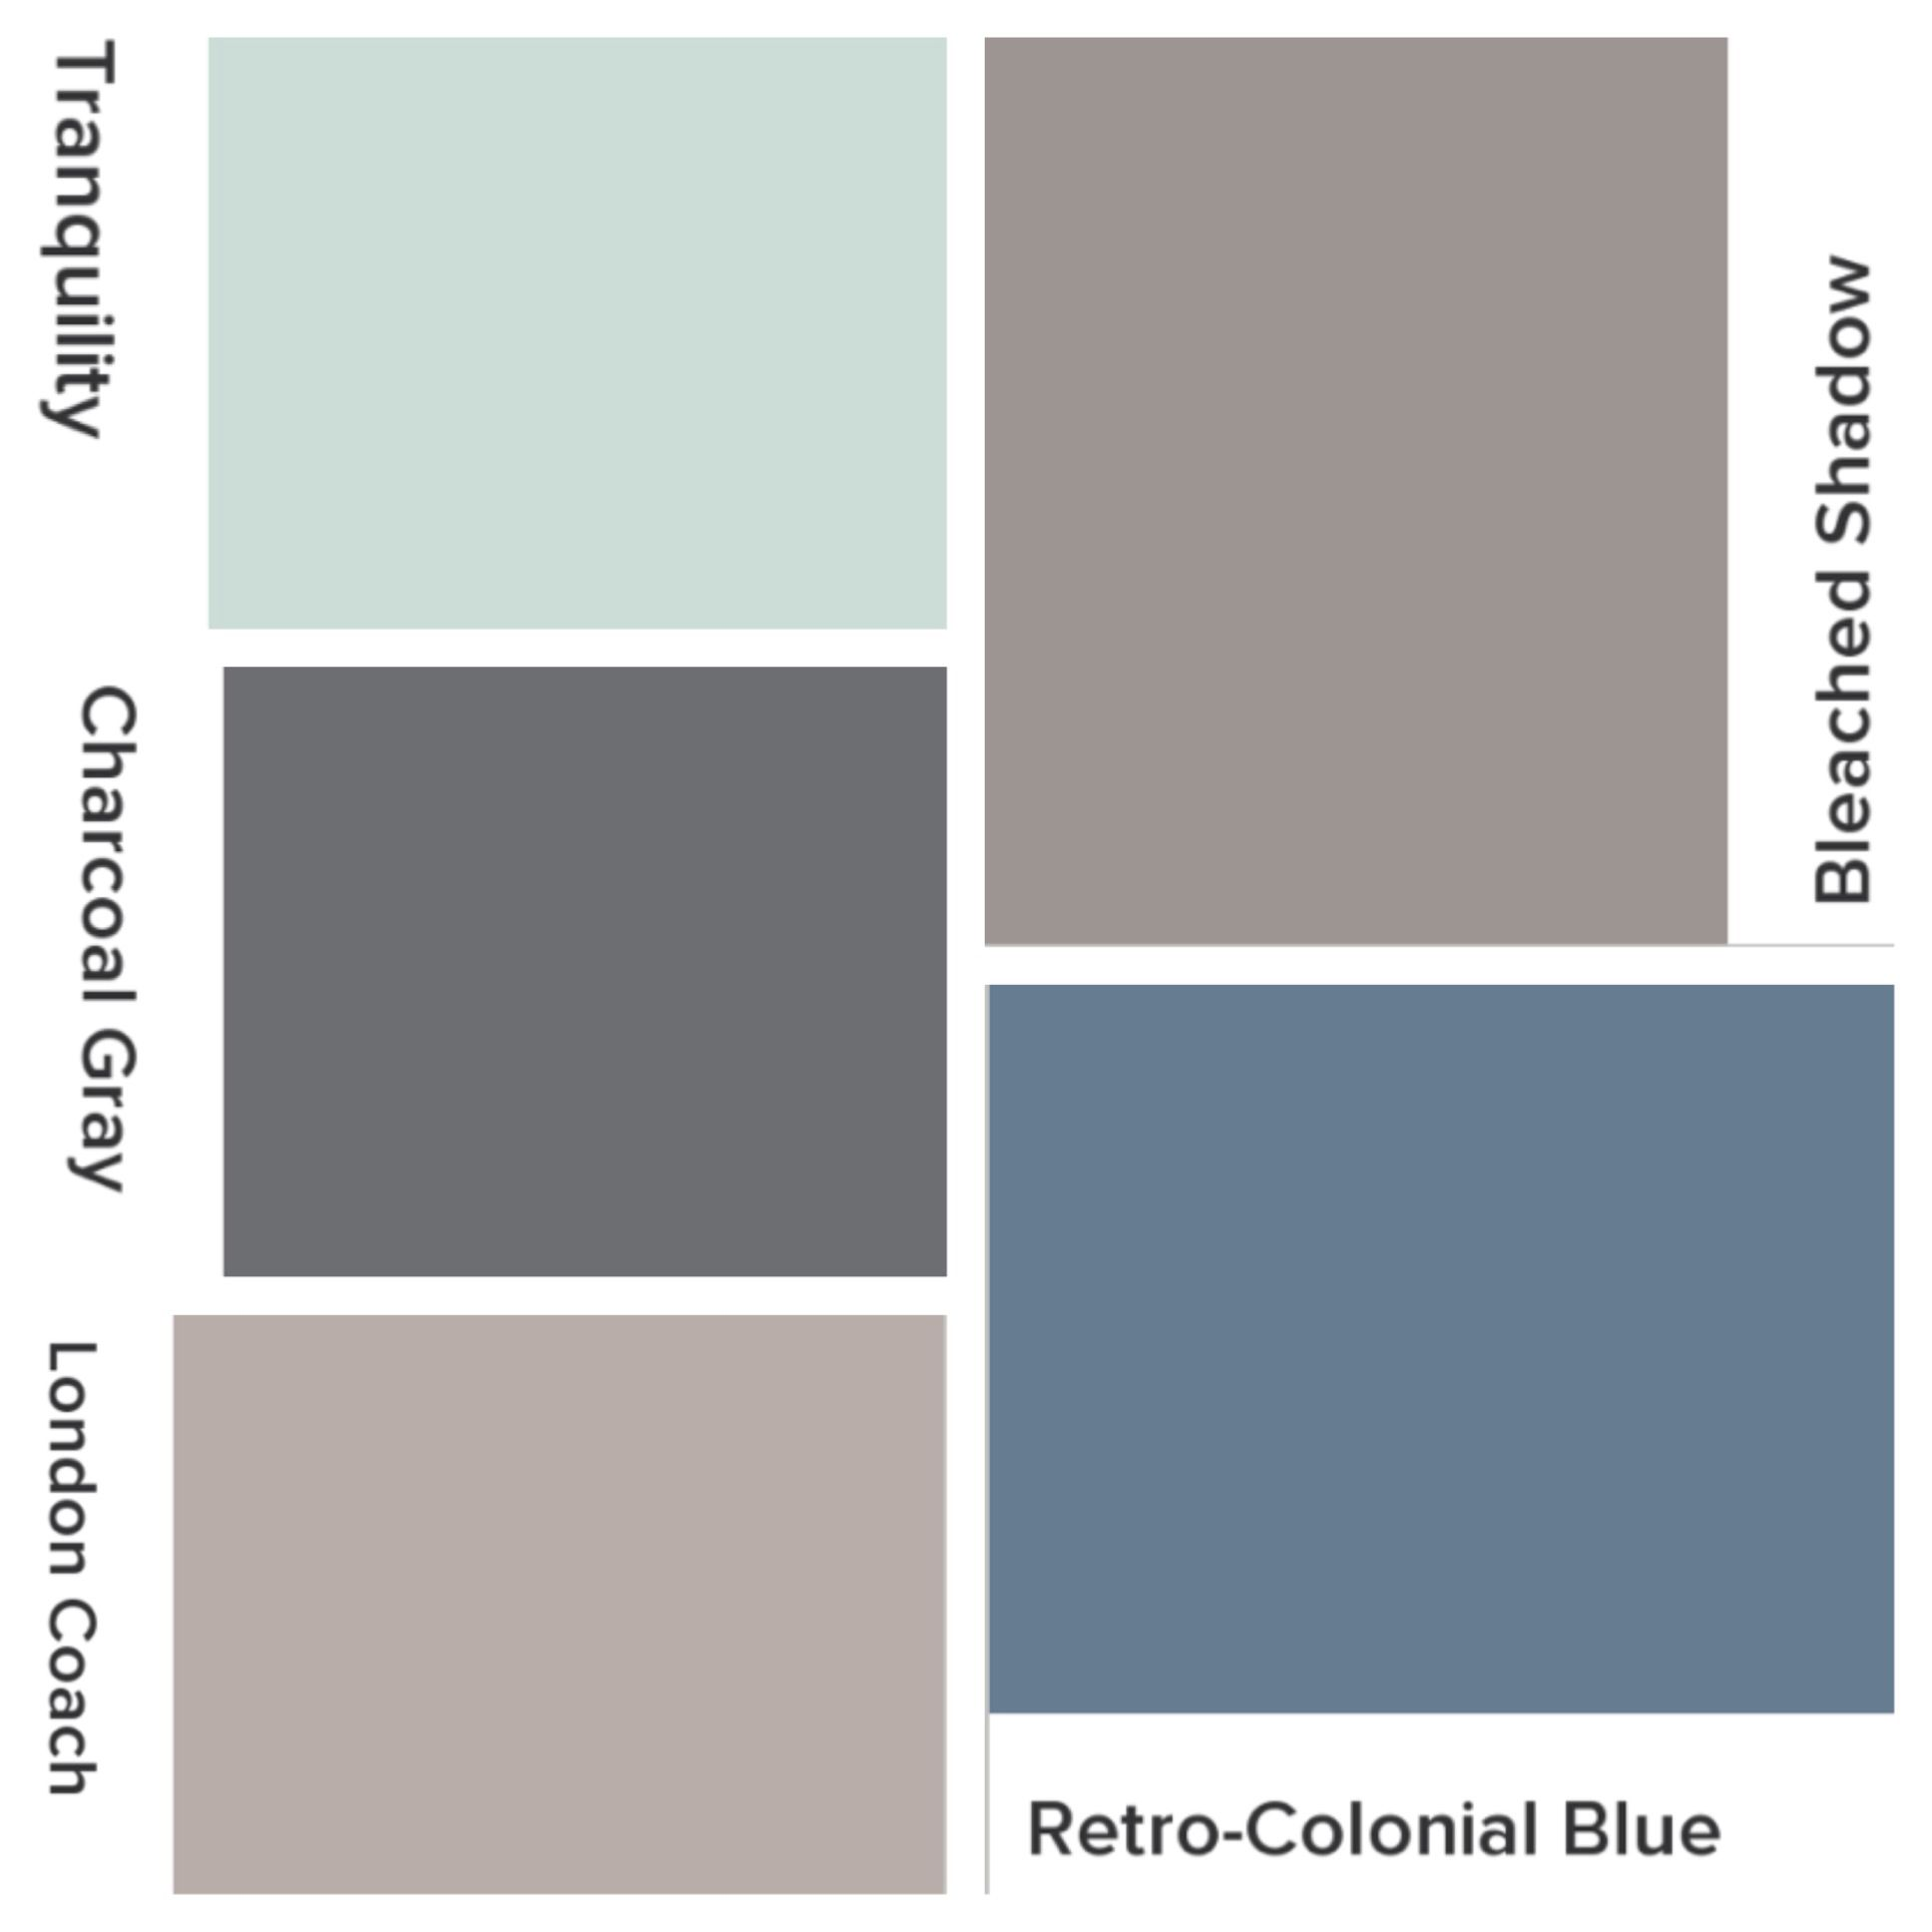 Retro Colonial Blue Office London Coach Living Room Charcoal Gray Interior Doors Tranquility Guest Bathroom Valspar Lowes Paint